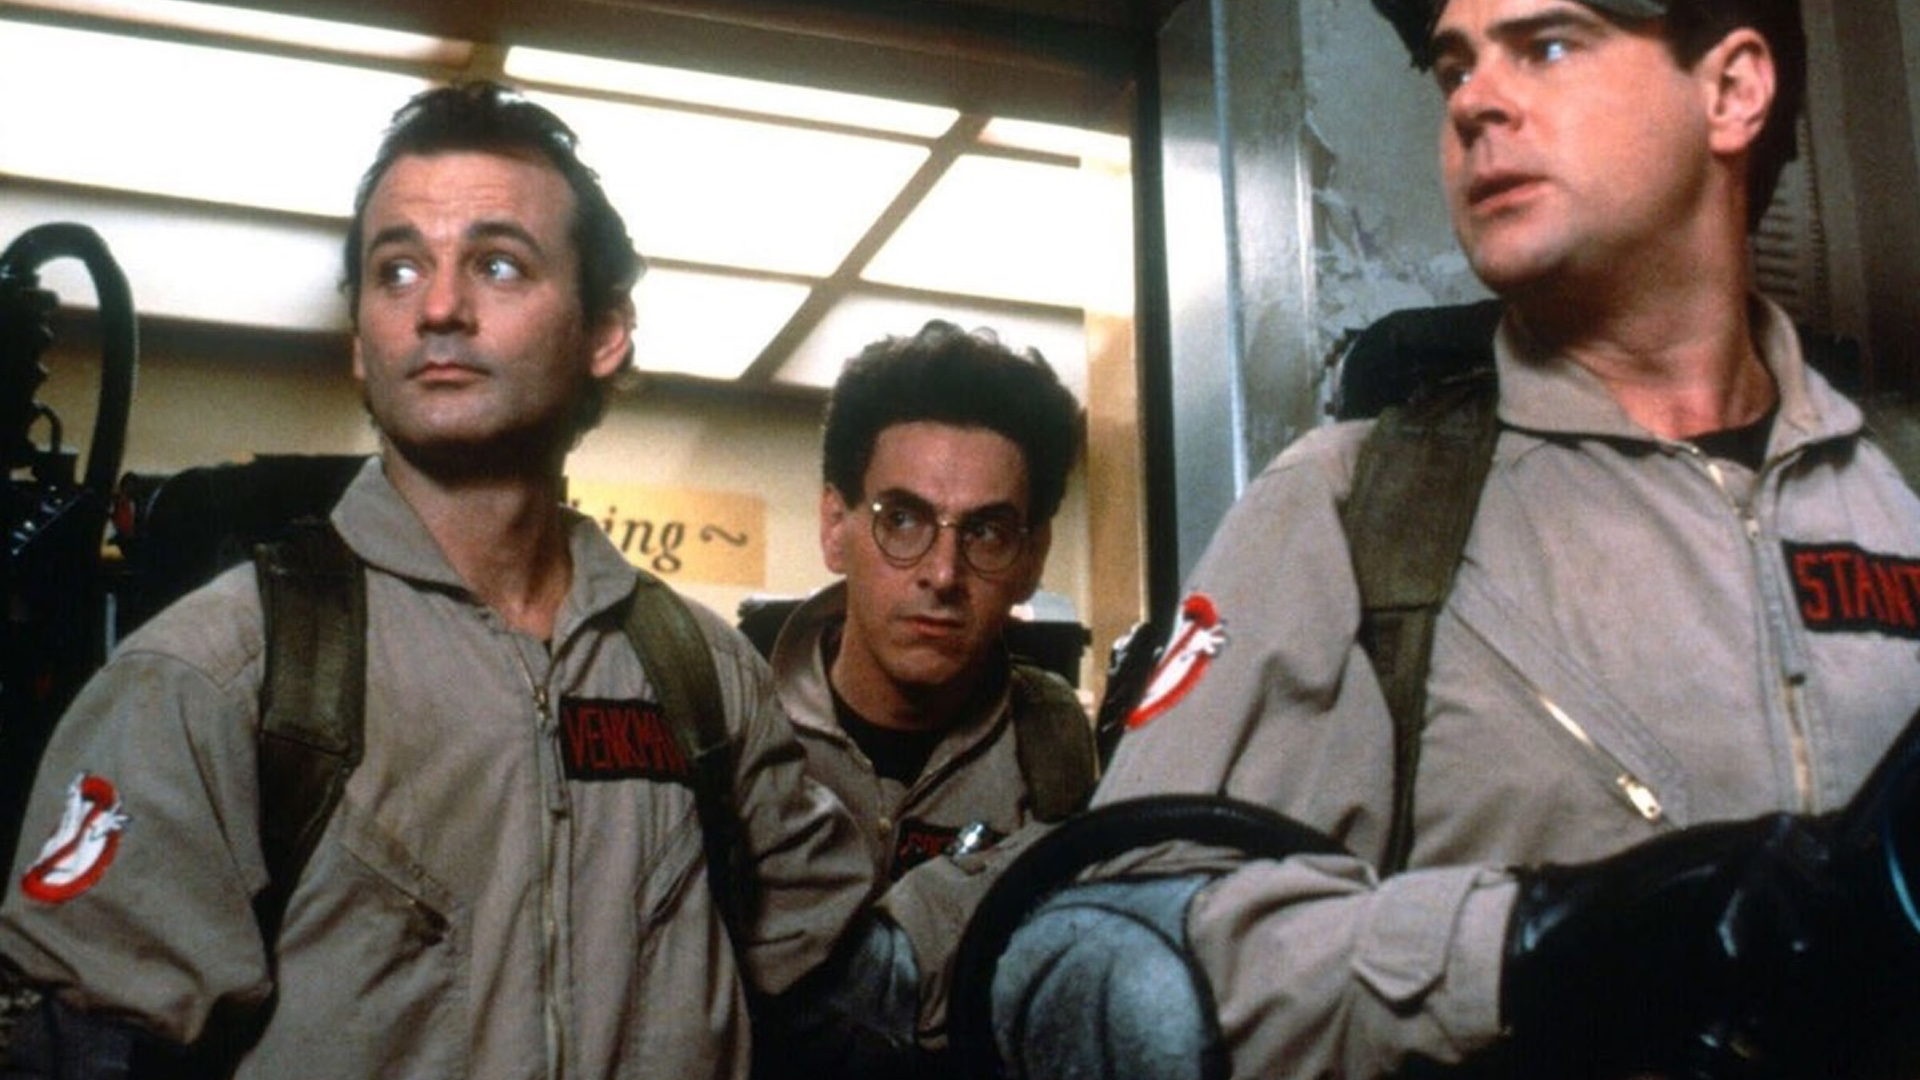 dan-aykroyd-wrote-a-ghostbusters-prequel-called-ghostbusters-high-and-it-could-happen-in-next-five-years-social.jpg